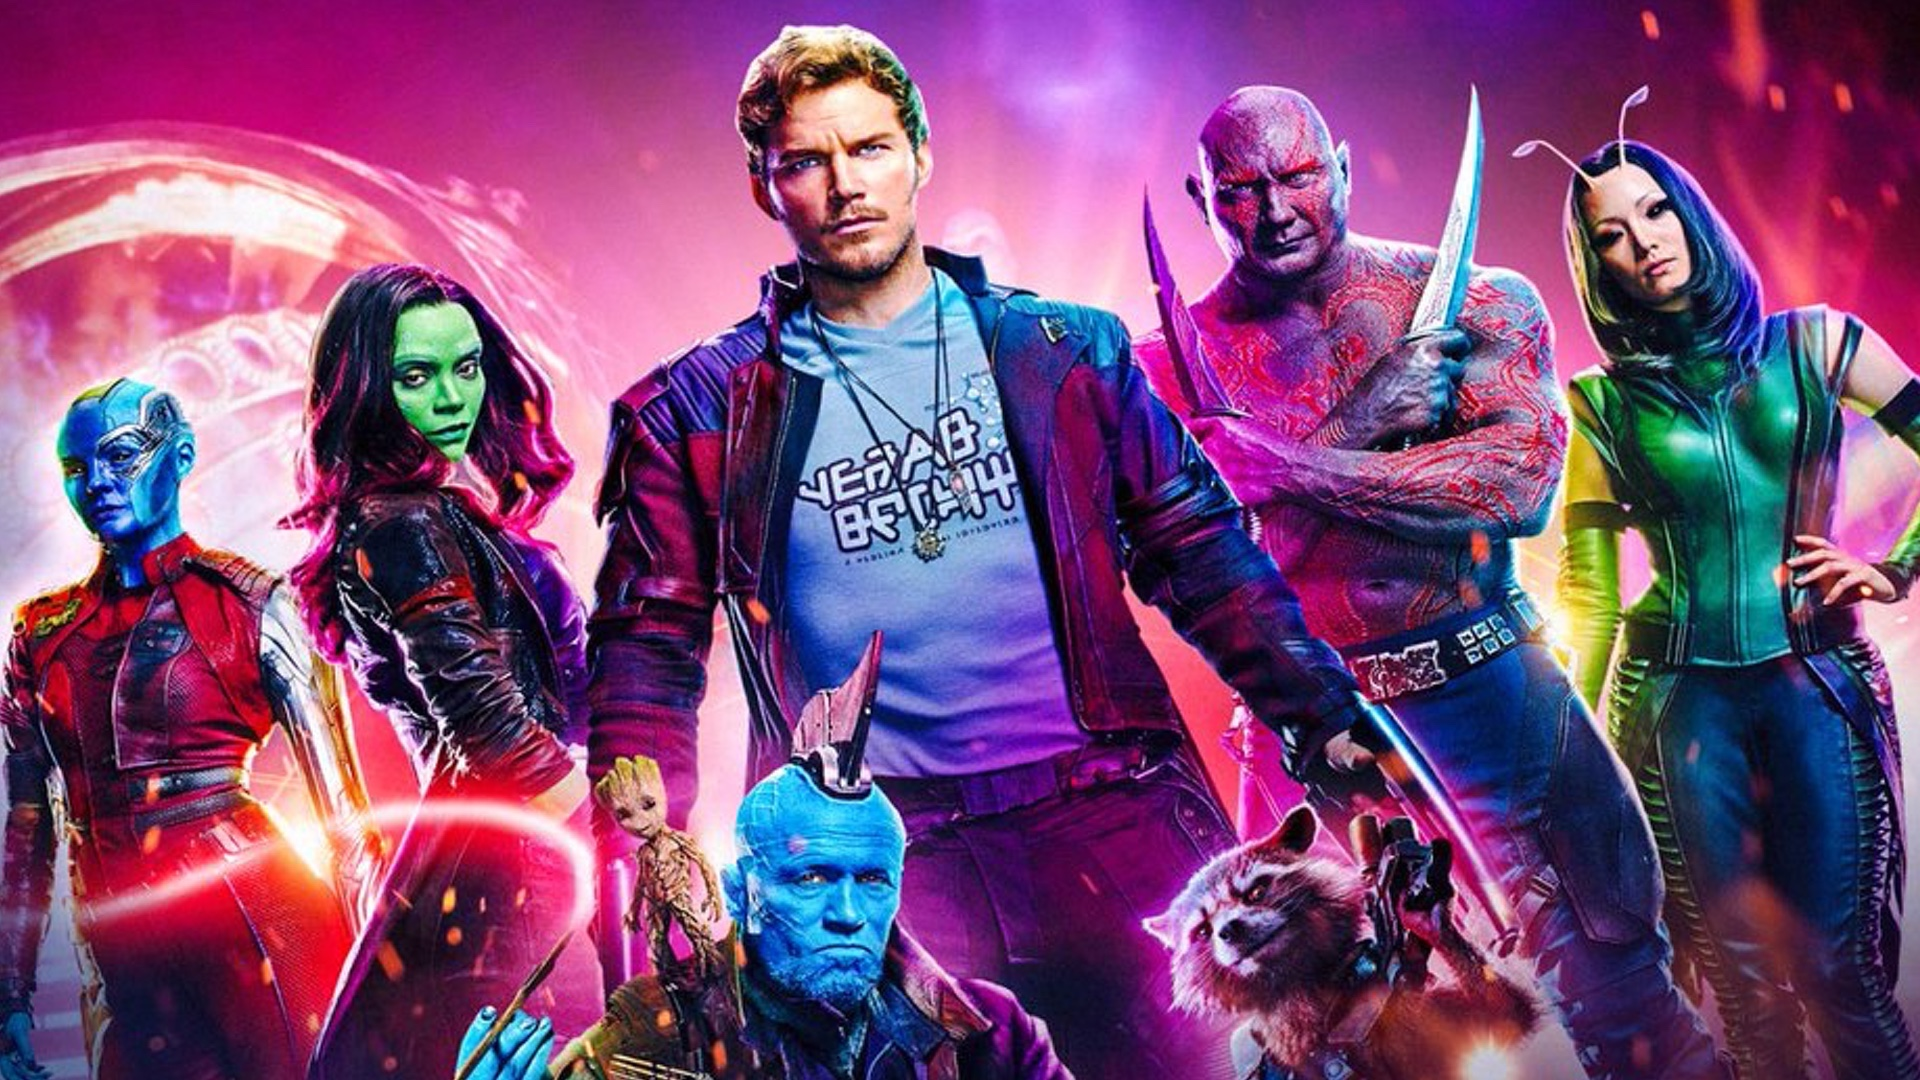 is-marvel-looking-for-a-female-director-to-replace-james-gunn-on-guardians-of-the-galaxy-vol-3-social.jpg